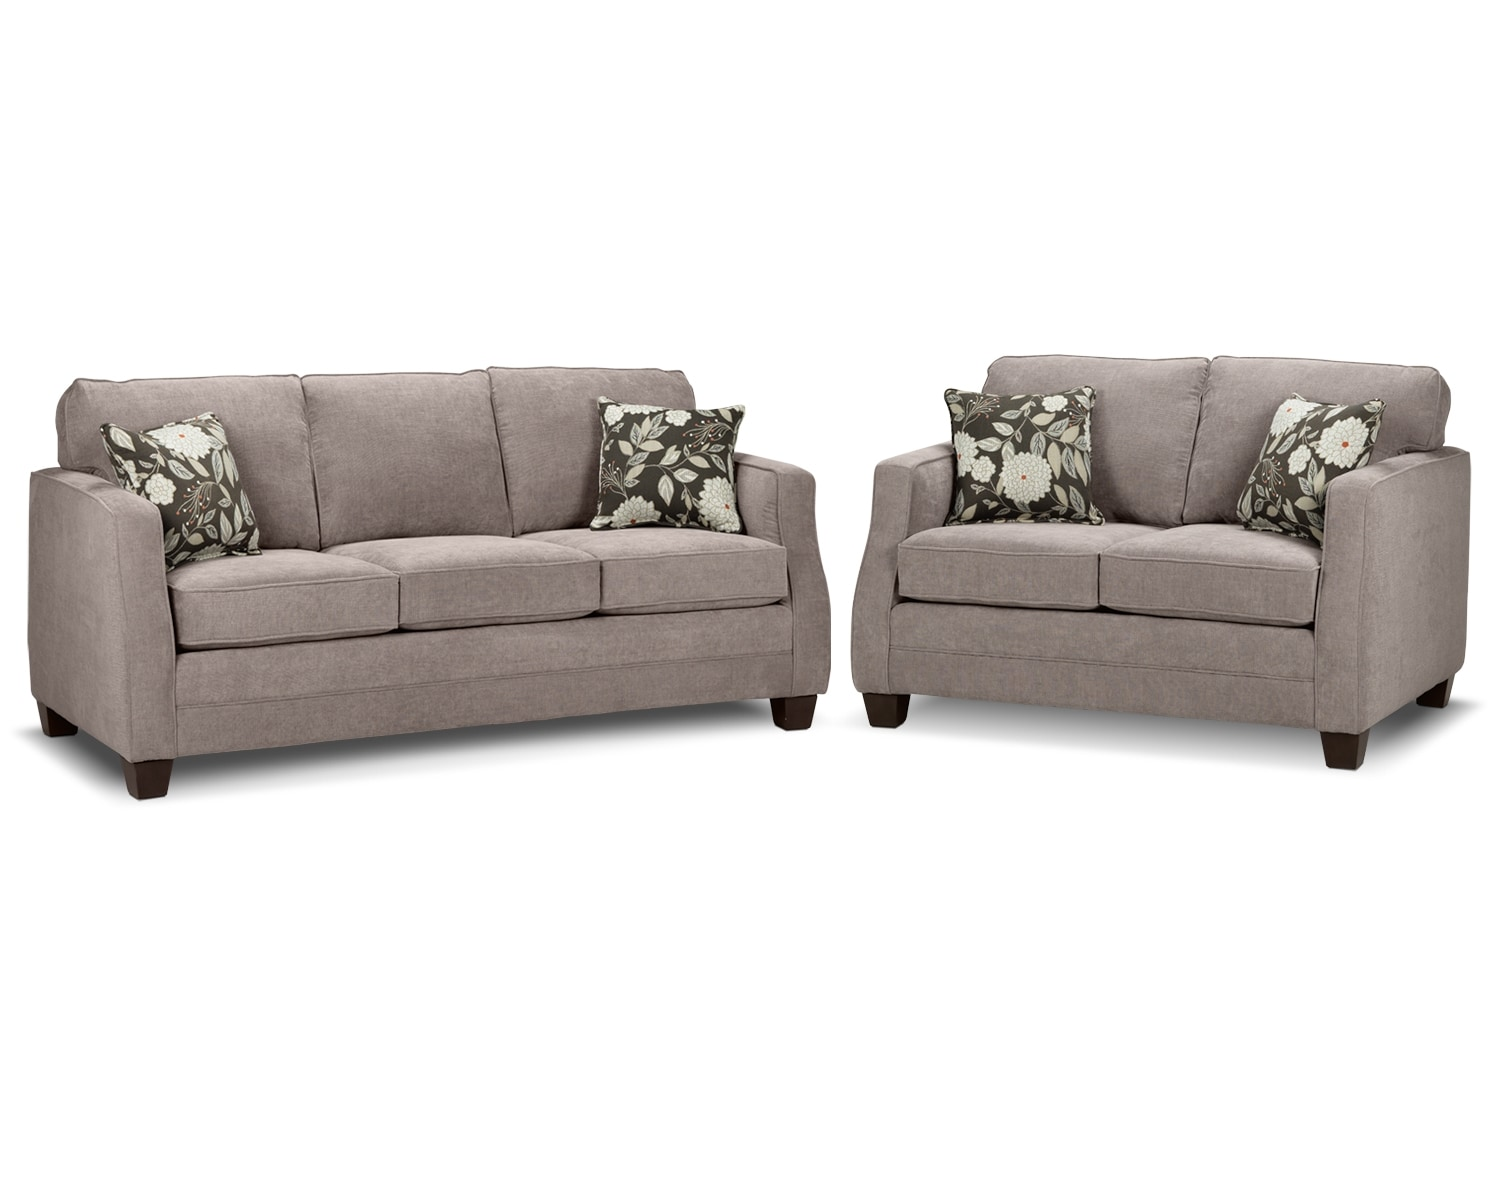 Agnes Sofa and Loveseat Set - Taupe